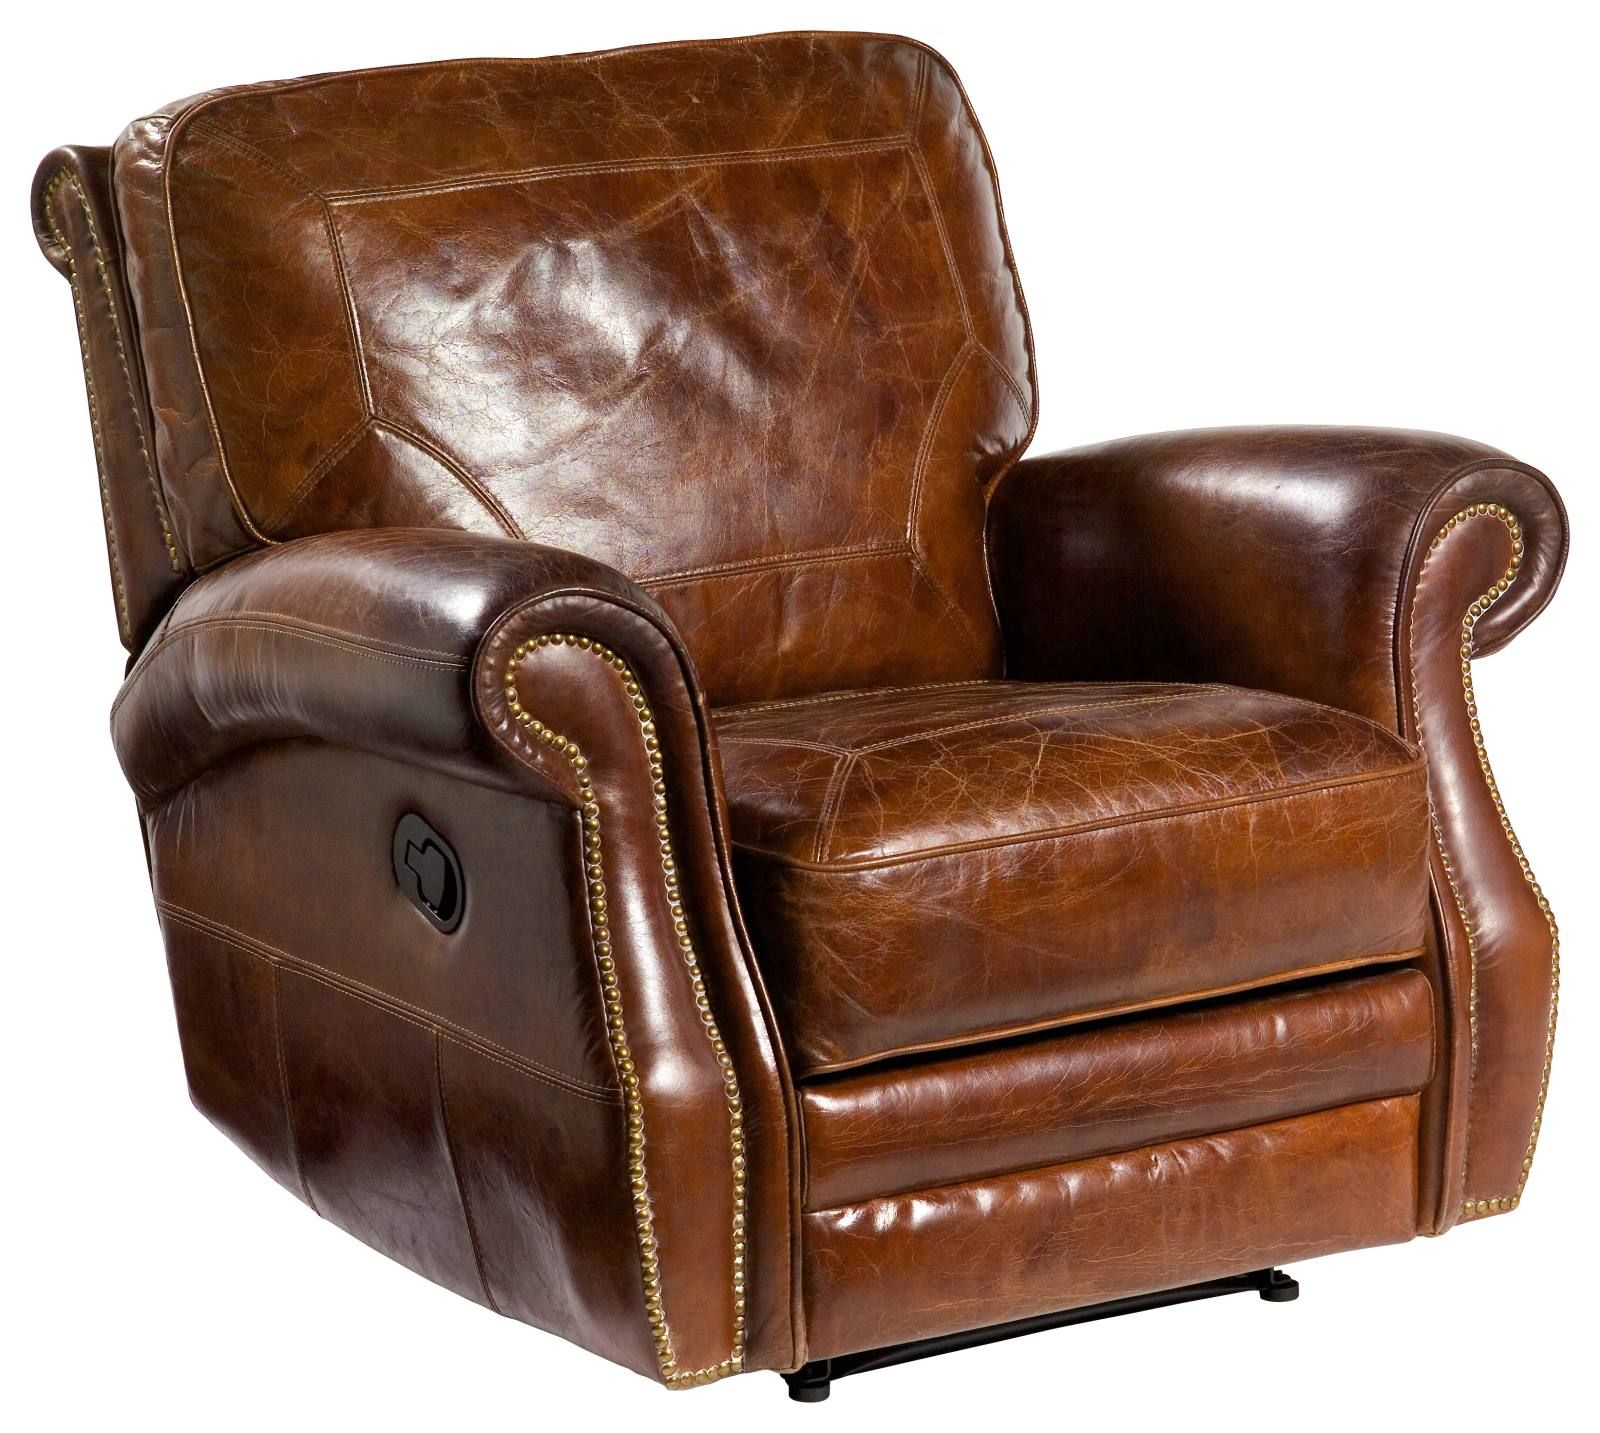 Broden Leather Reclining Chair Vintage Cigar Leather Recliner Chair Recliner Chair Leather Recliner